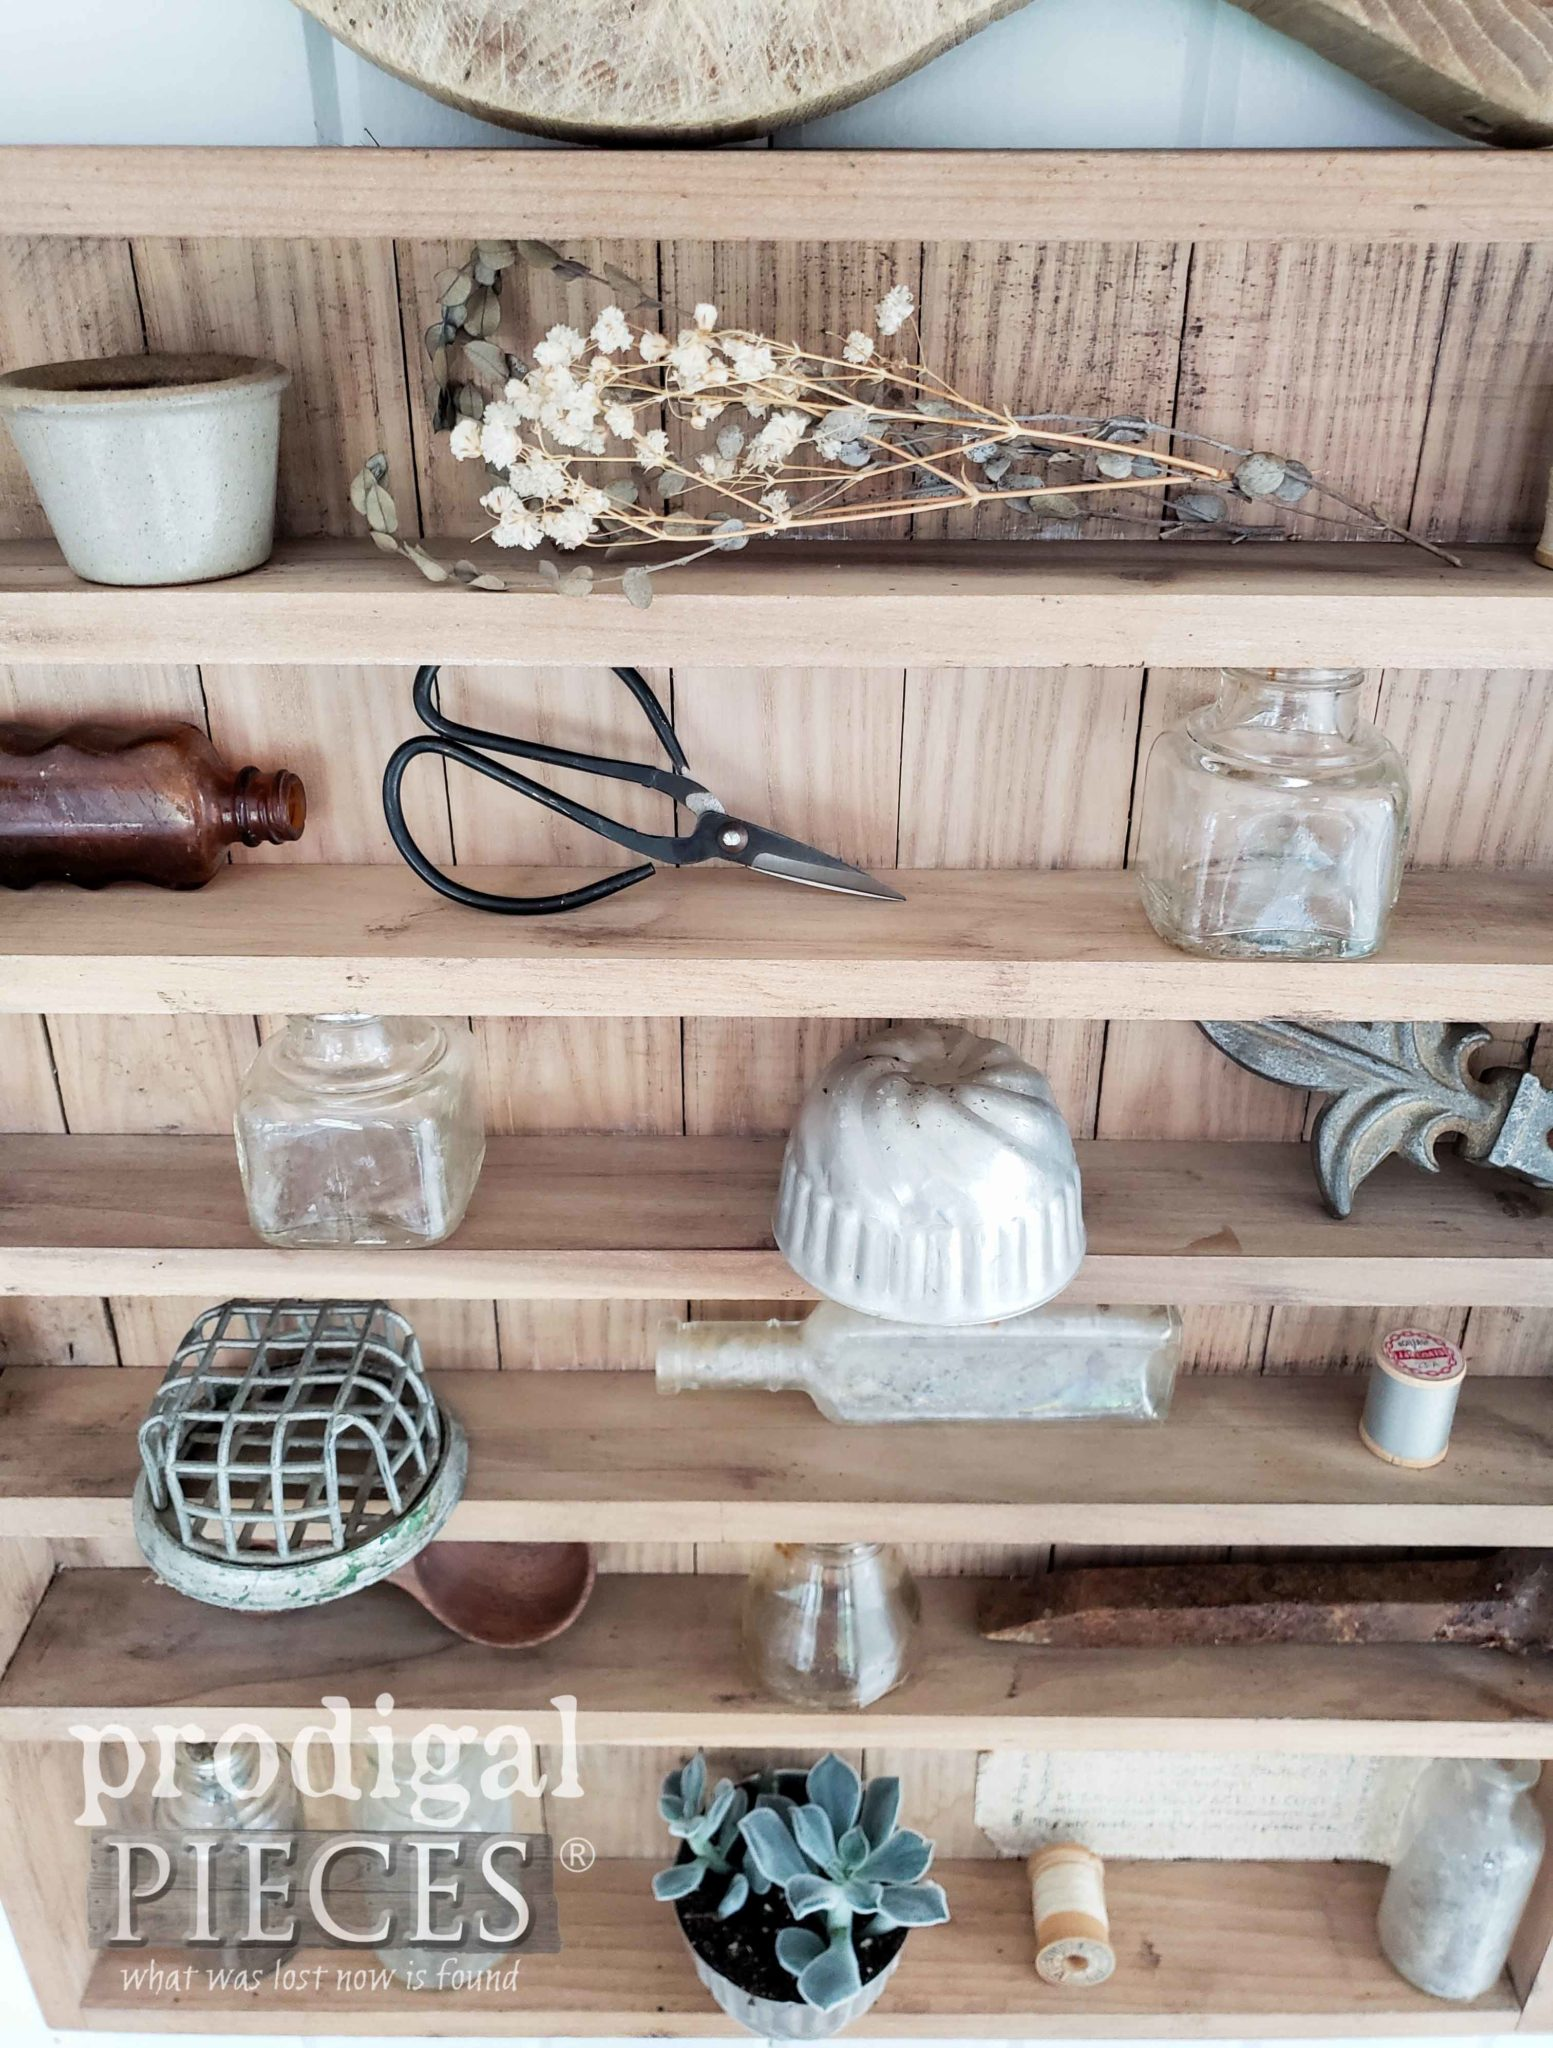 DIY Farmhouse Apothecary Cabinet with Bits & Baubles for a Vintage Vignette by Larissa of Prodigal Pieces | prodigalpieces.com #prodigalpieces #farmhouse #home #diy #homedecor